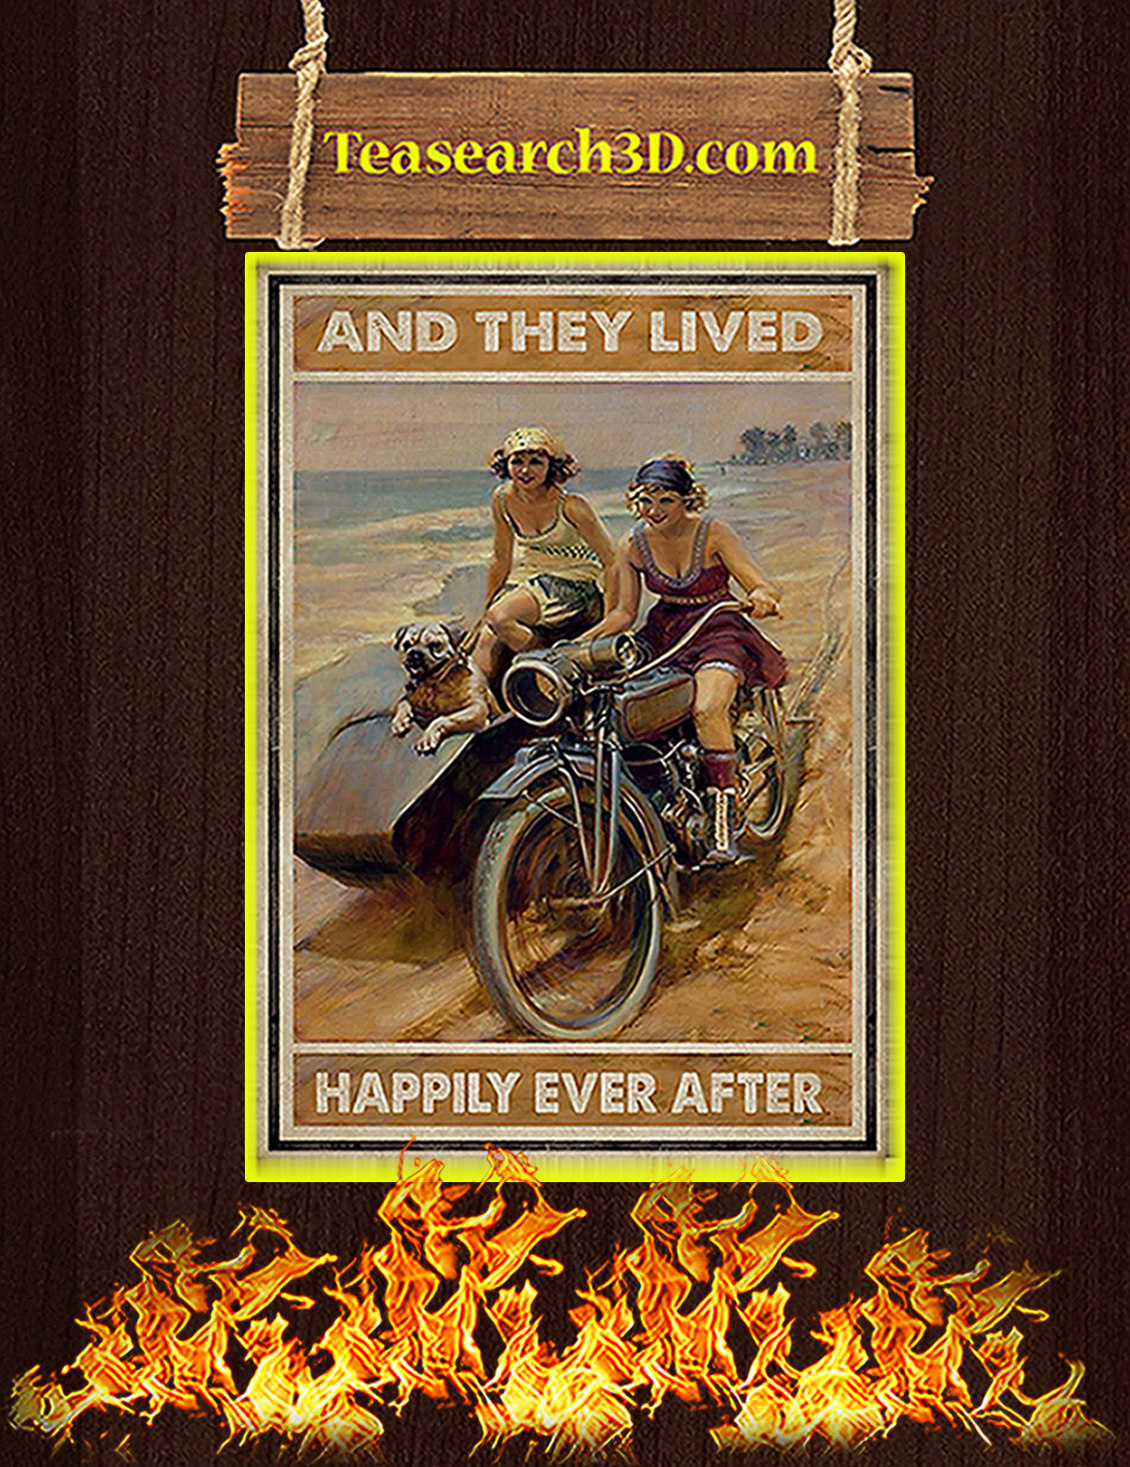 Biker And they lived happily ever after poster A3